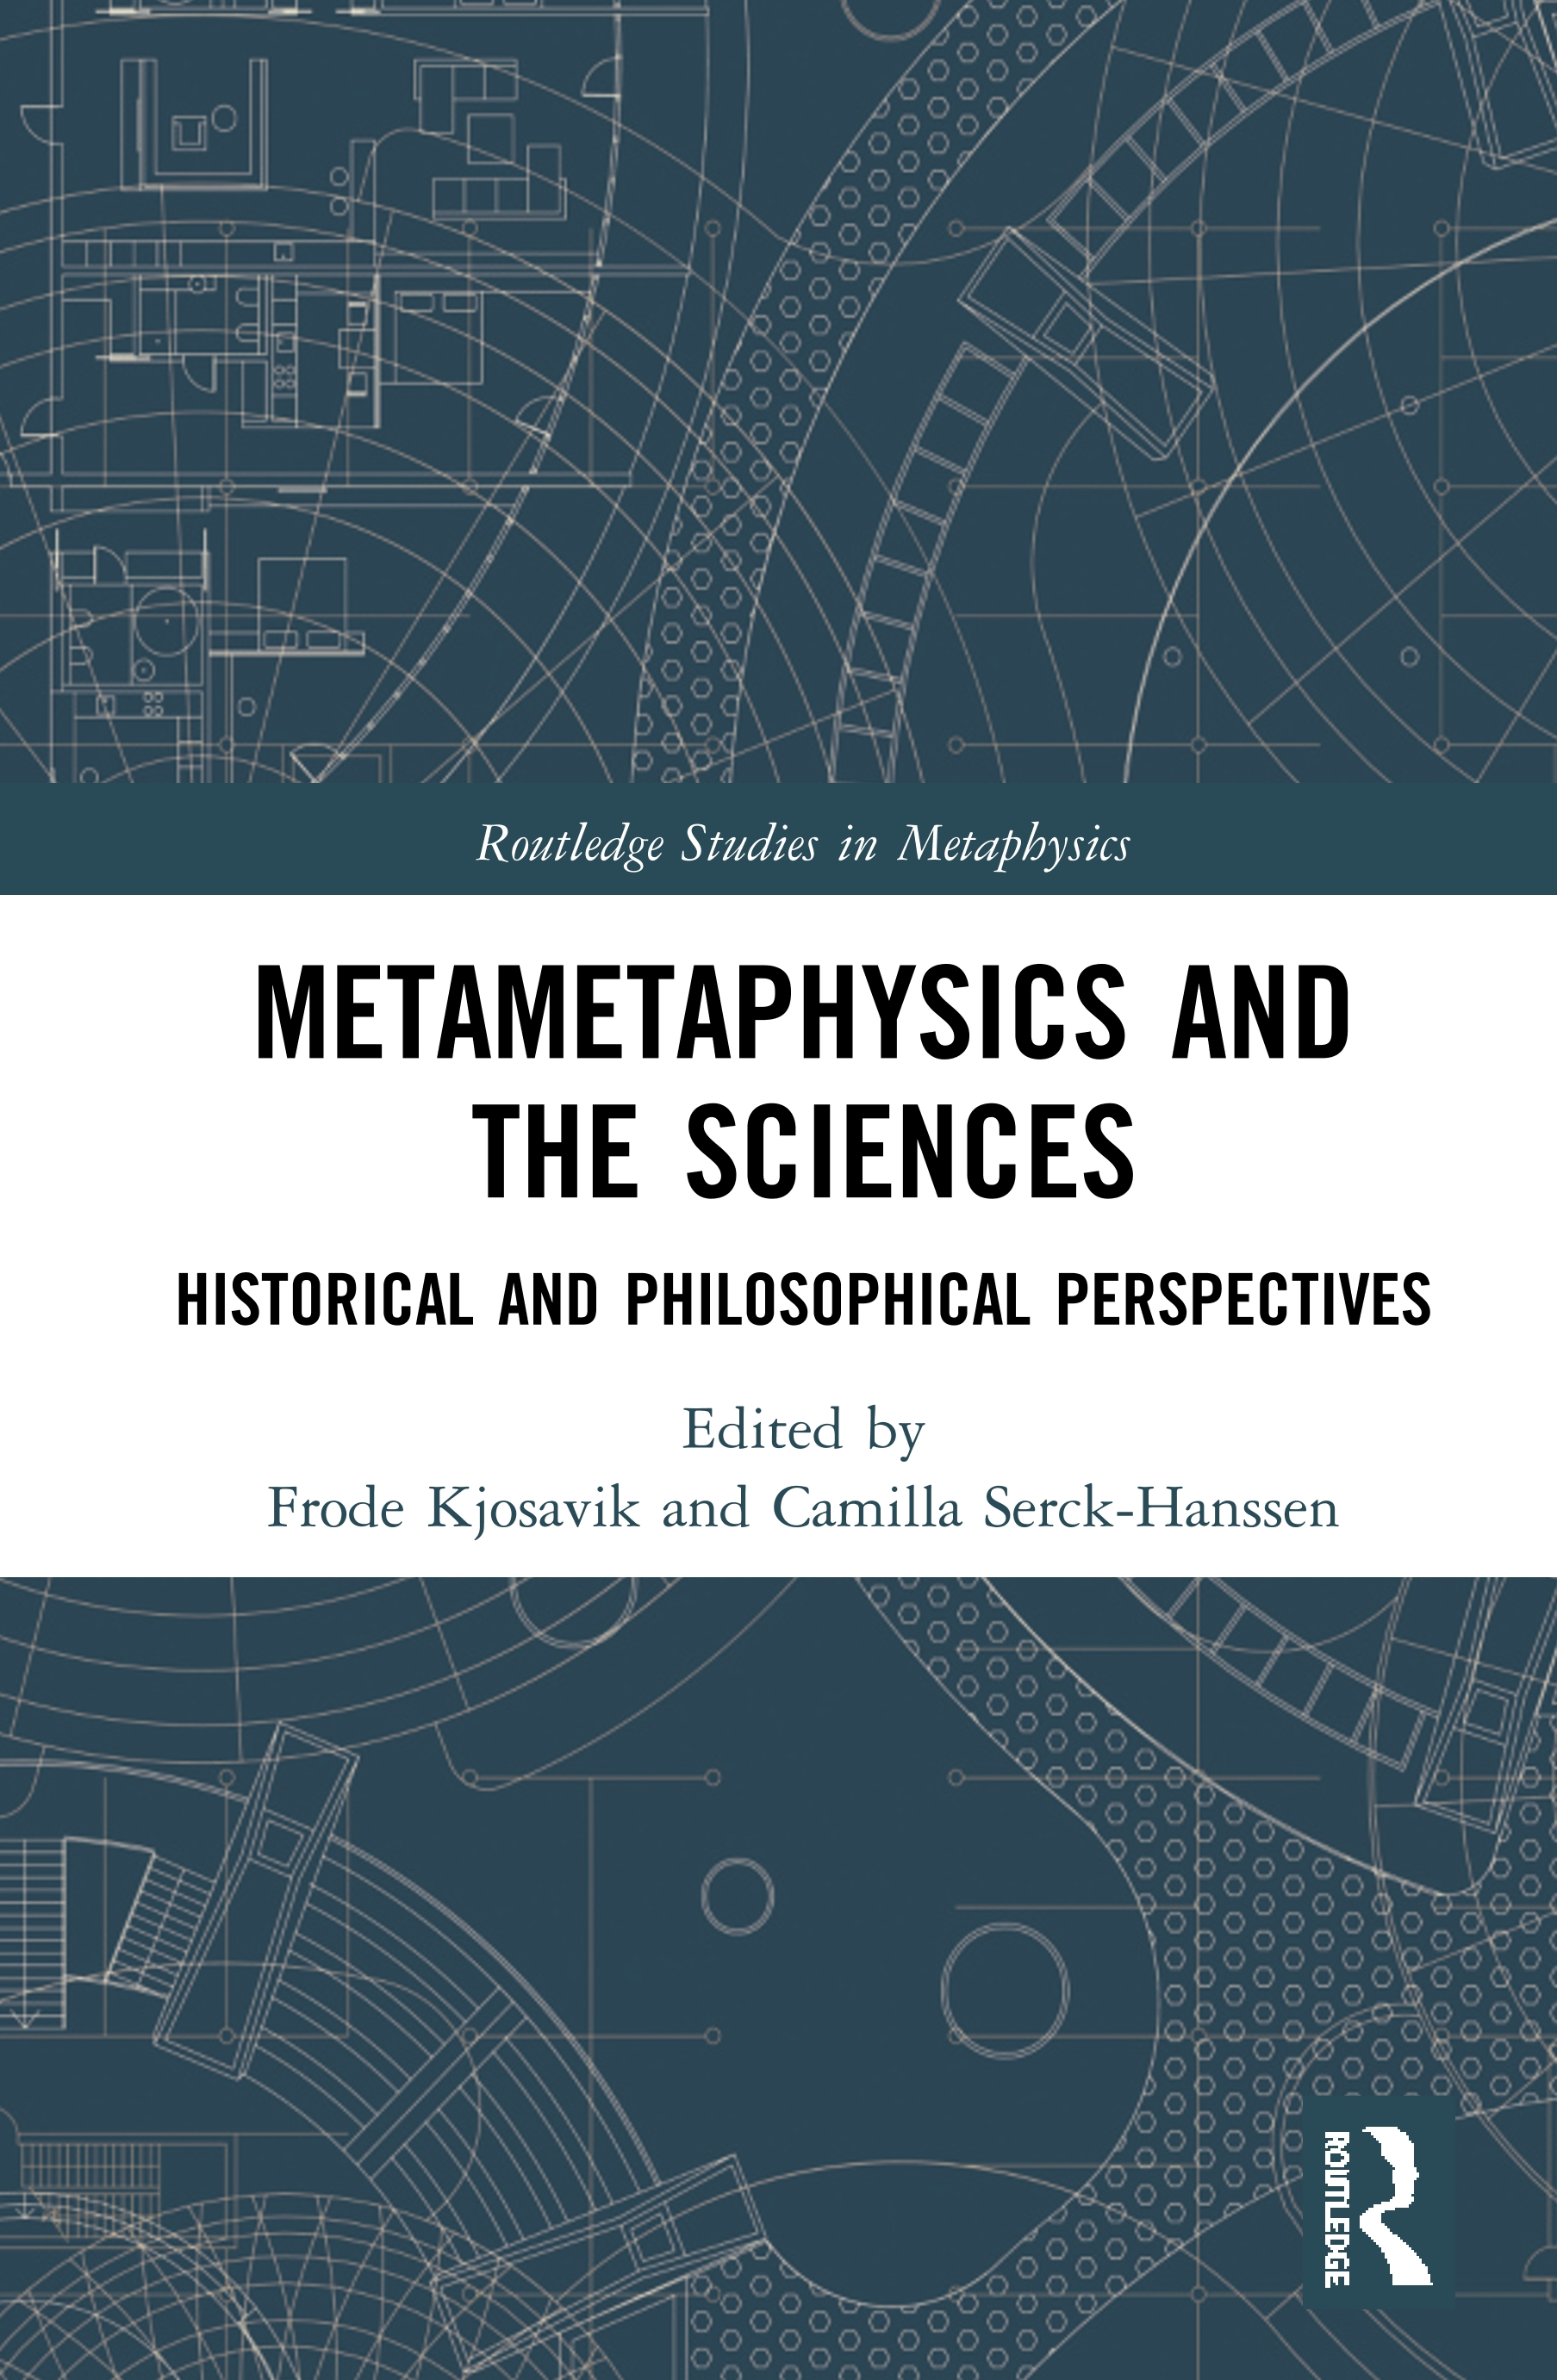 Metametaphysics and the Sciences: Historical and Philosophical Perspectives Book Cover